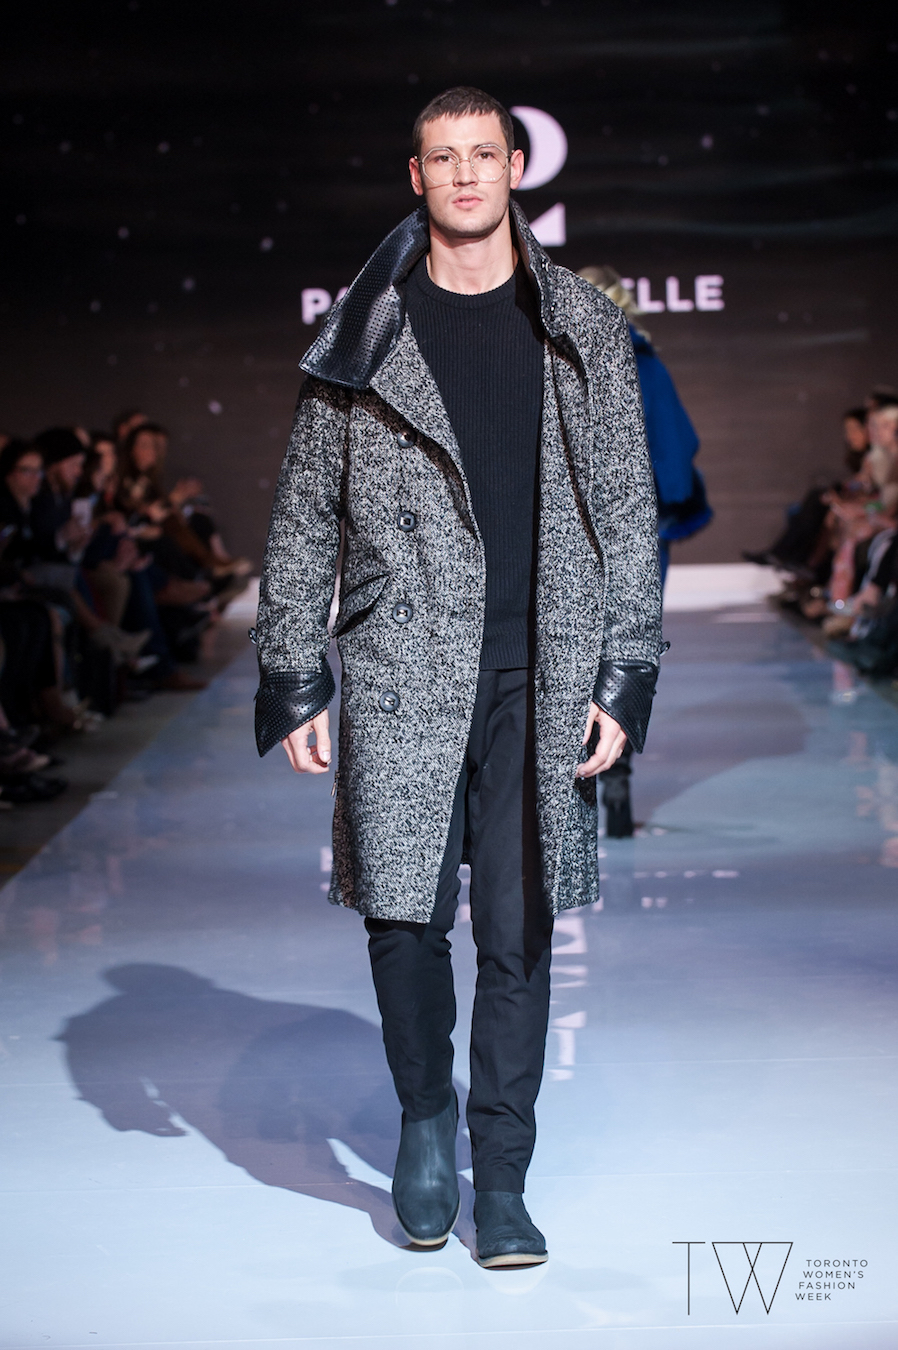 c7729-pascal_labelle-twfw-toronto-womens-fashion-week-photo-credit-che-rosales-mens-look-3.jpg